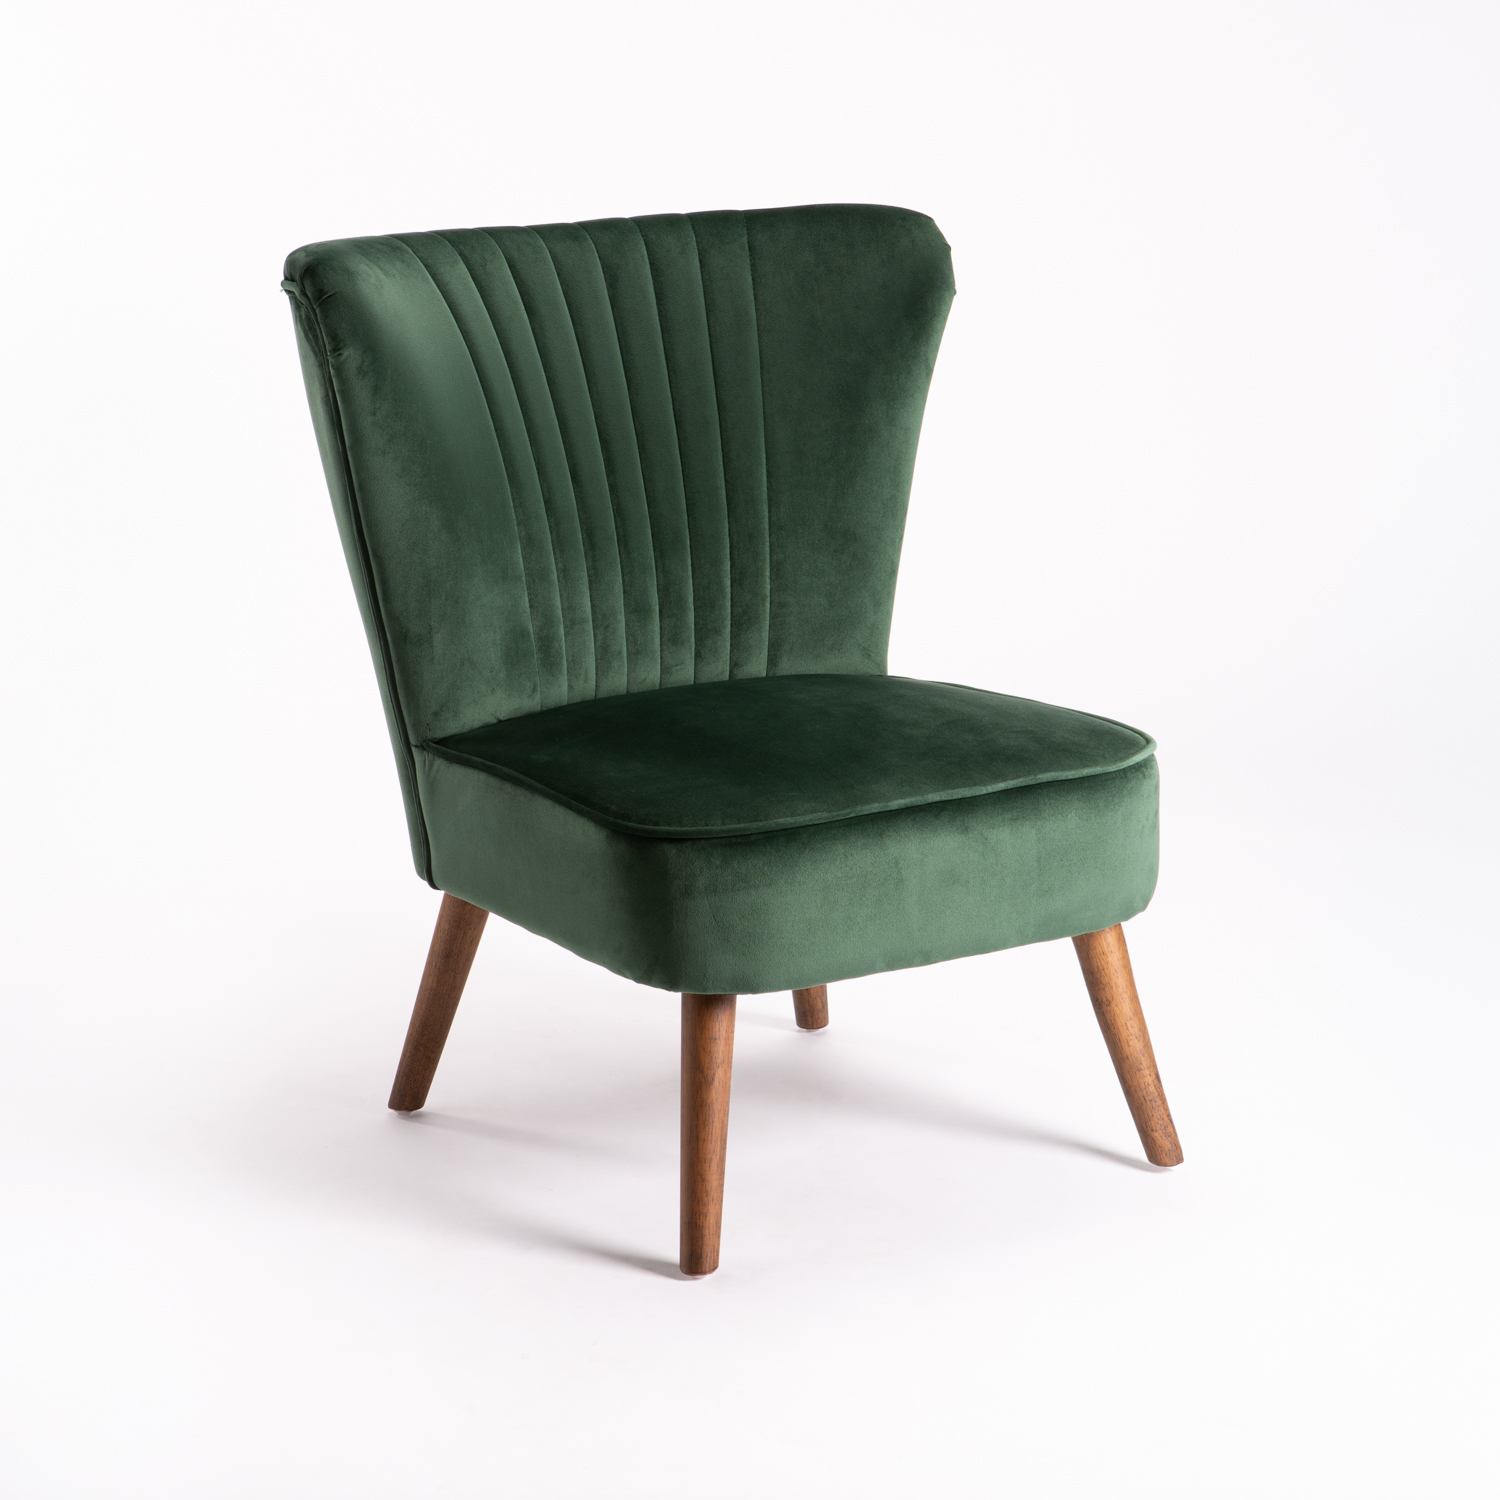 SHELL VELVET CHAIR